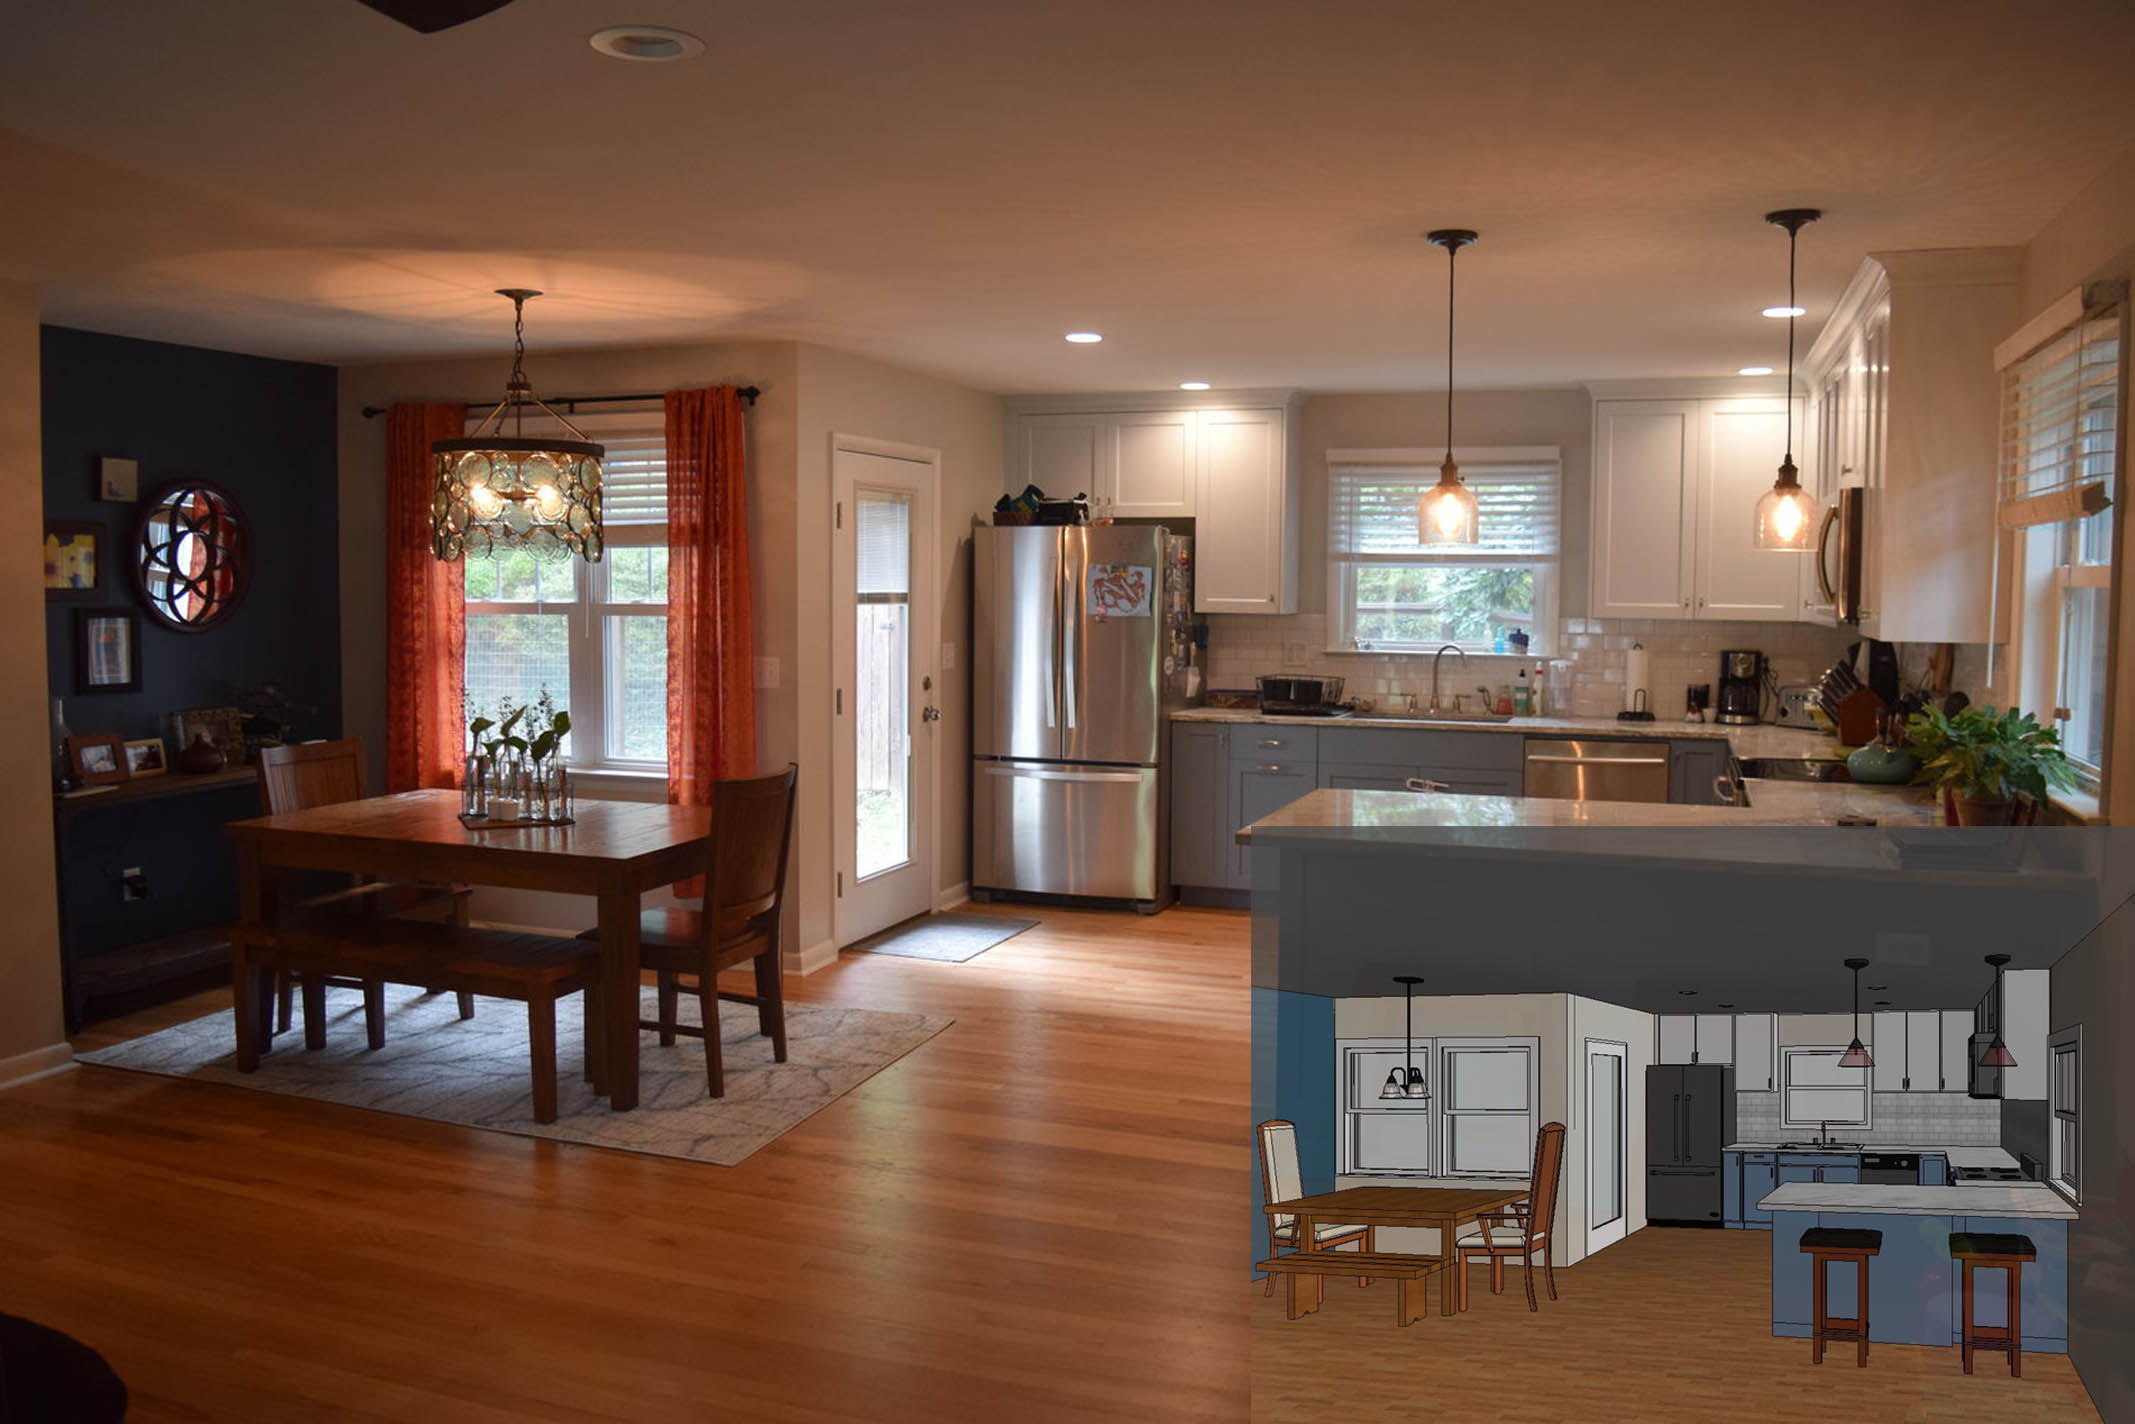 """Example of a finished kitchen addition along with the final design before construction started."""